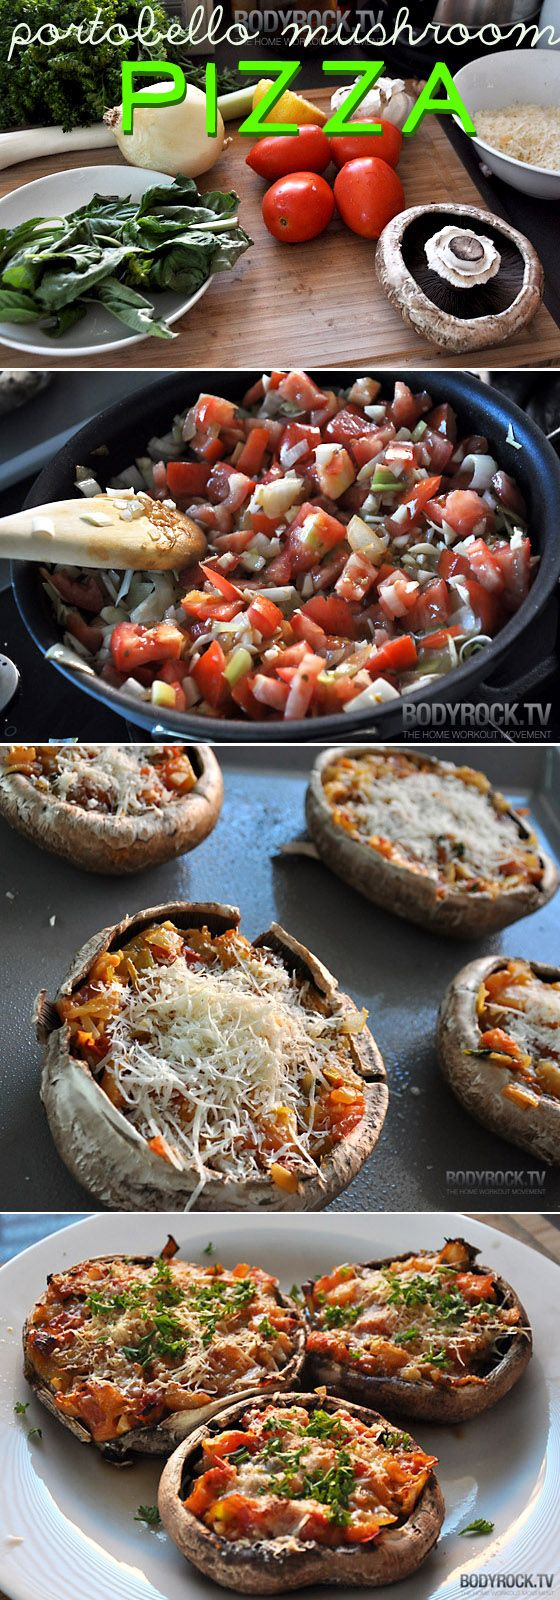 Portobello Mushroom Pizza.  These are so delish.  I tried a different version... Breakfast: portobello mushrooms, scrambles eggs, bacon, ham or sausage, mild salsa, tex mex, Monterey Jack, mozzarella, bake at 350F middle rack, for 15-20 mins.